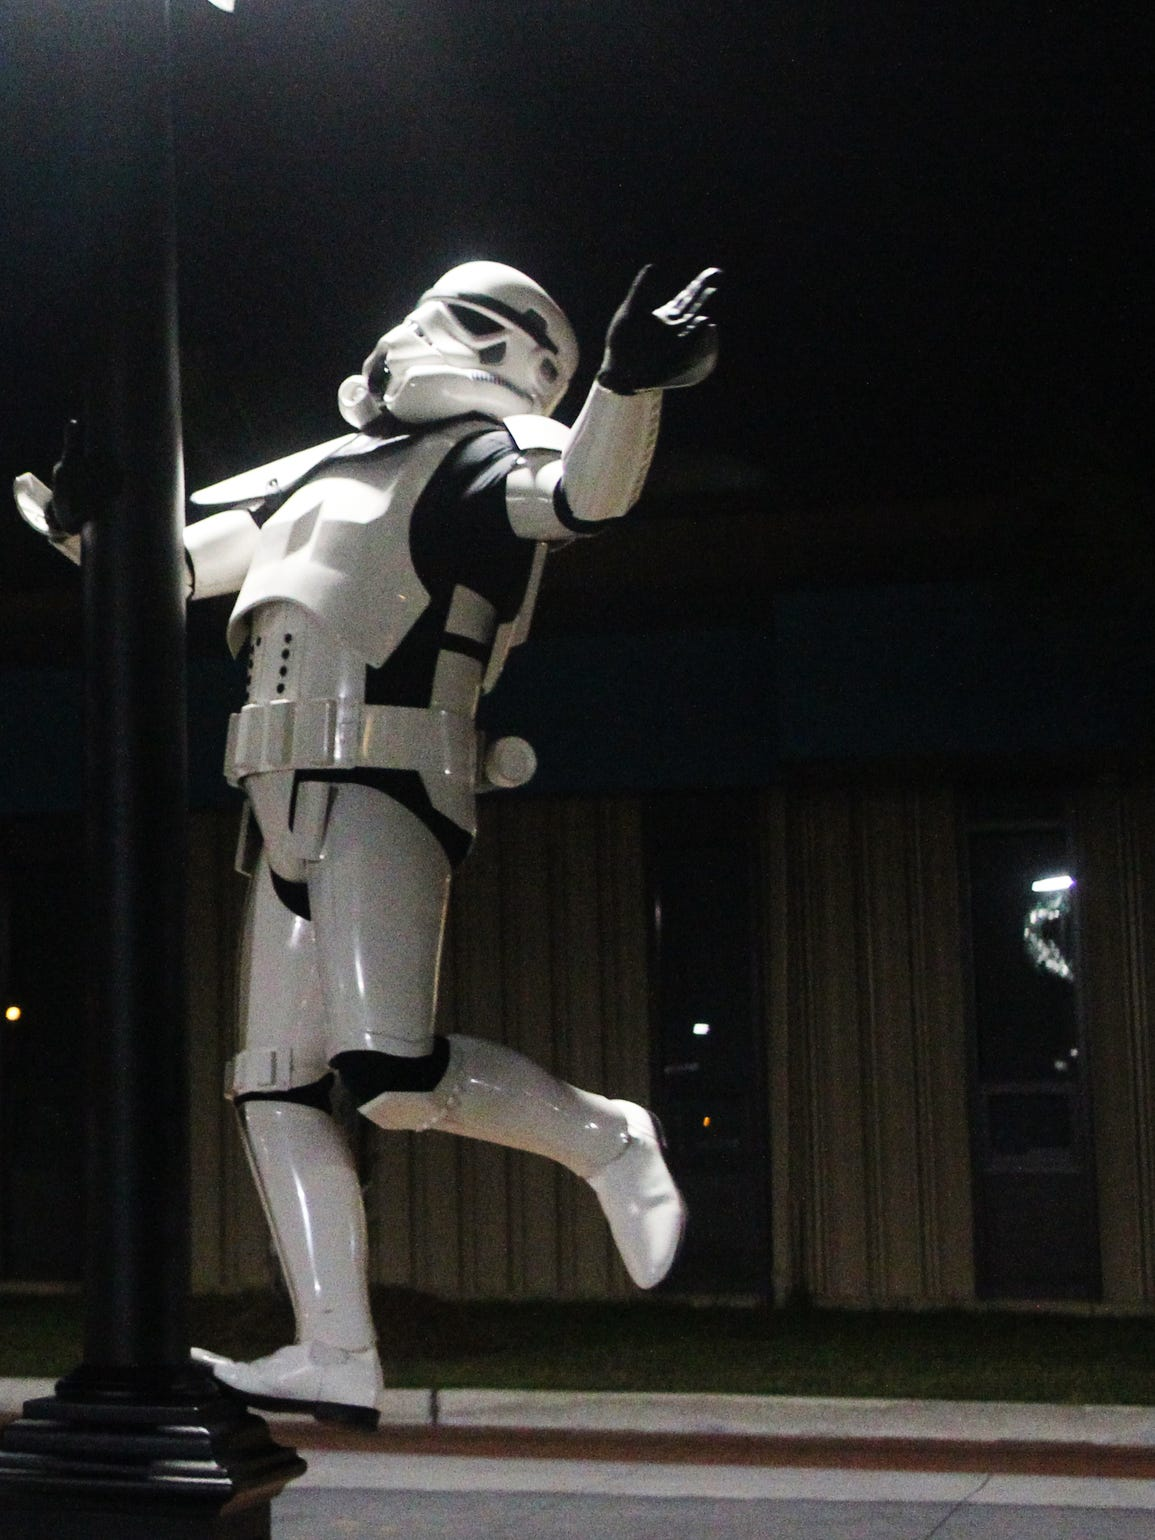 Paul Cassidy, a member of the 501st Legion, poses in